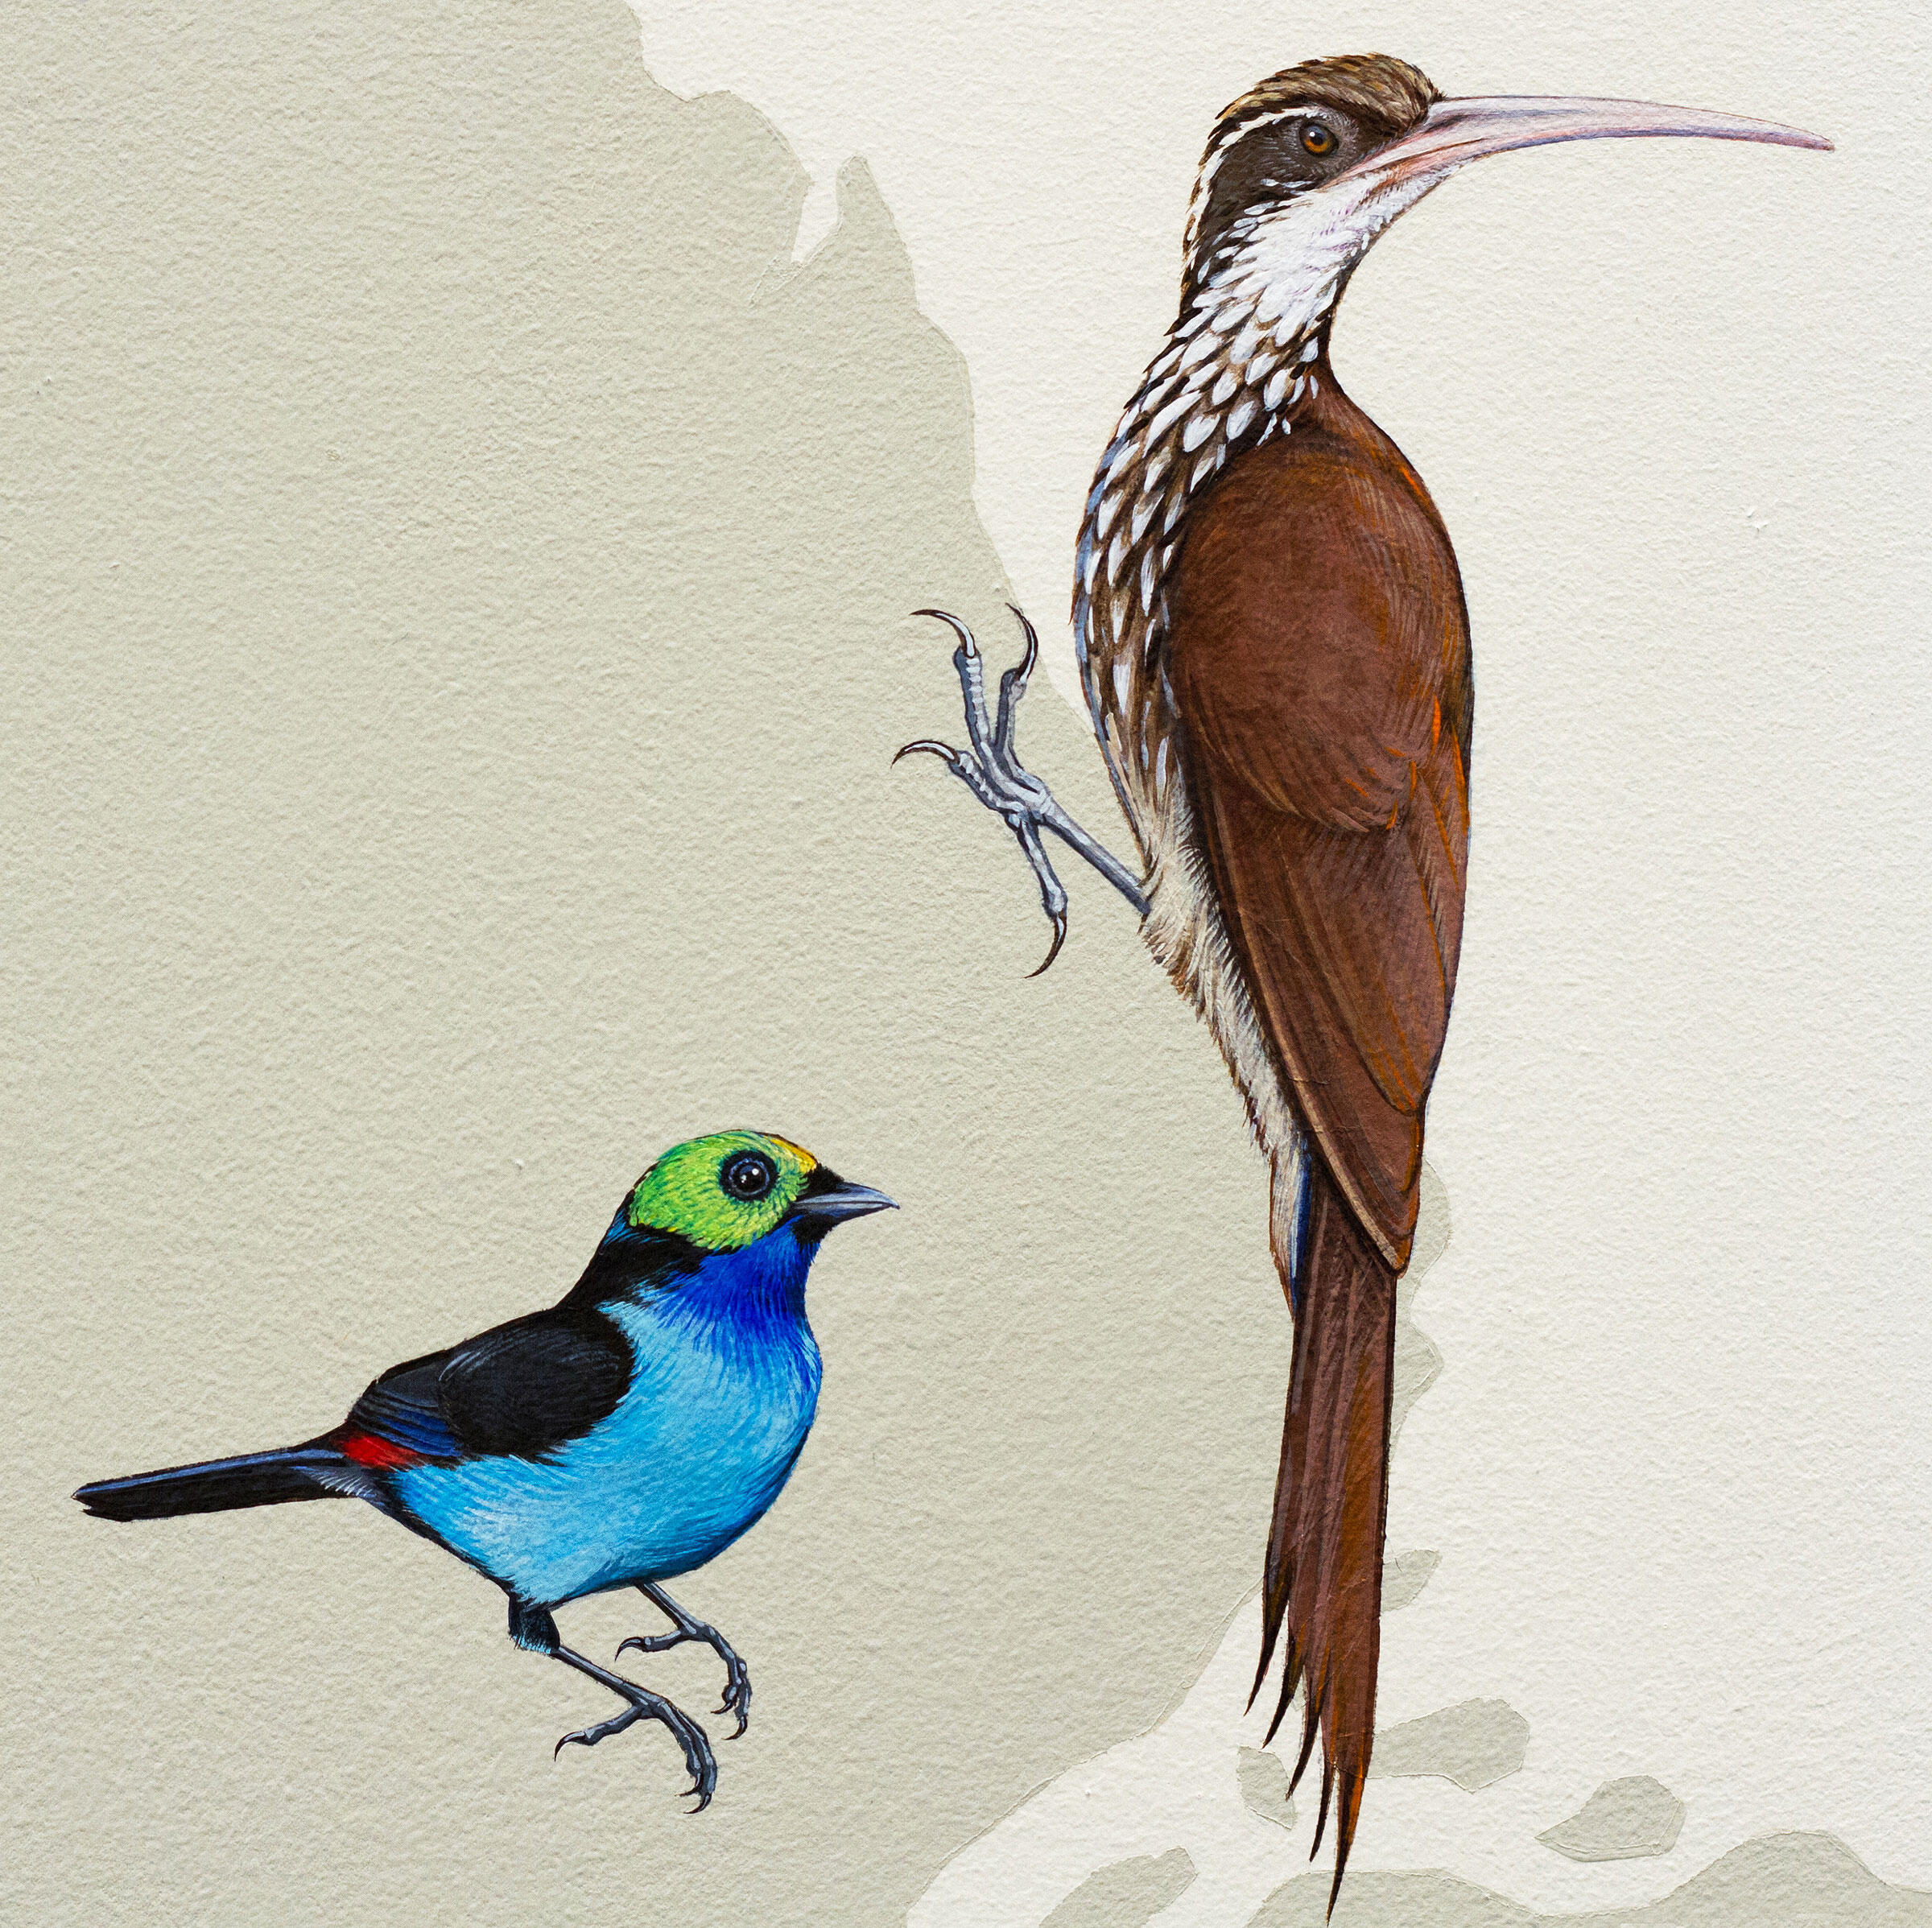 """From left to right: Paradise Tanager and Long-billed Woodcreeper. Courtesy of <a href=""""http://inkdwell.com/"""">Ink Dwell</a>"""